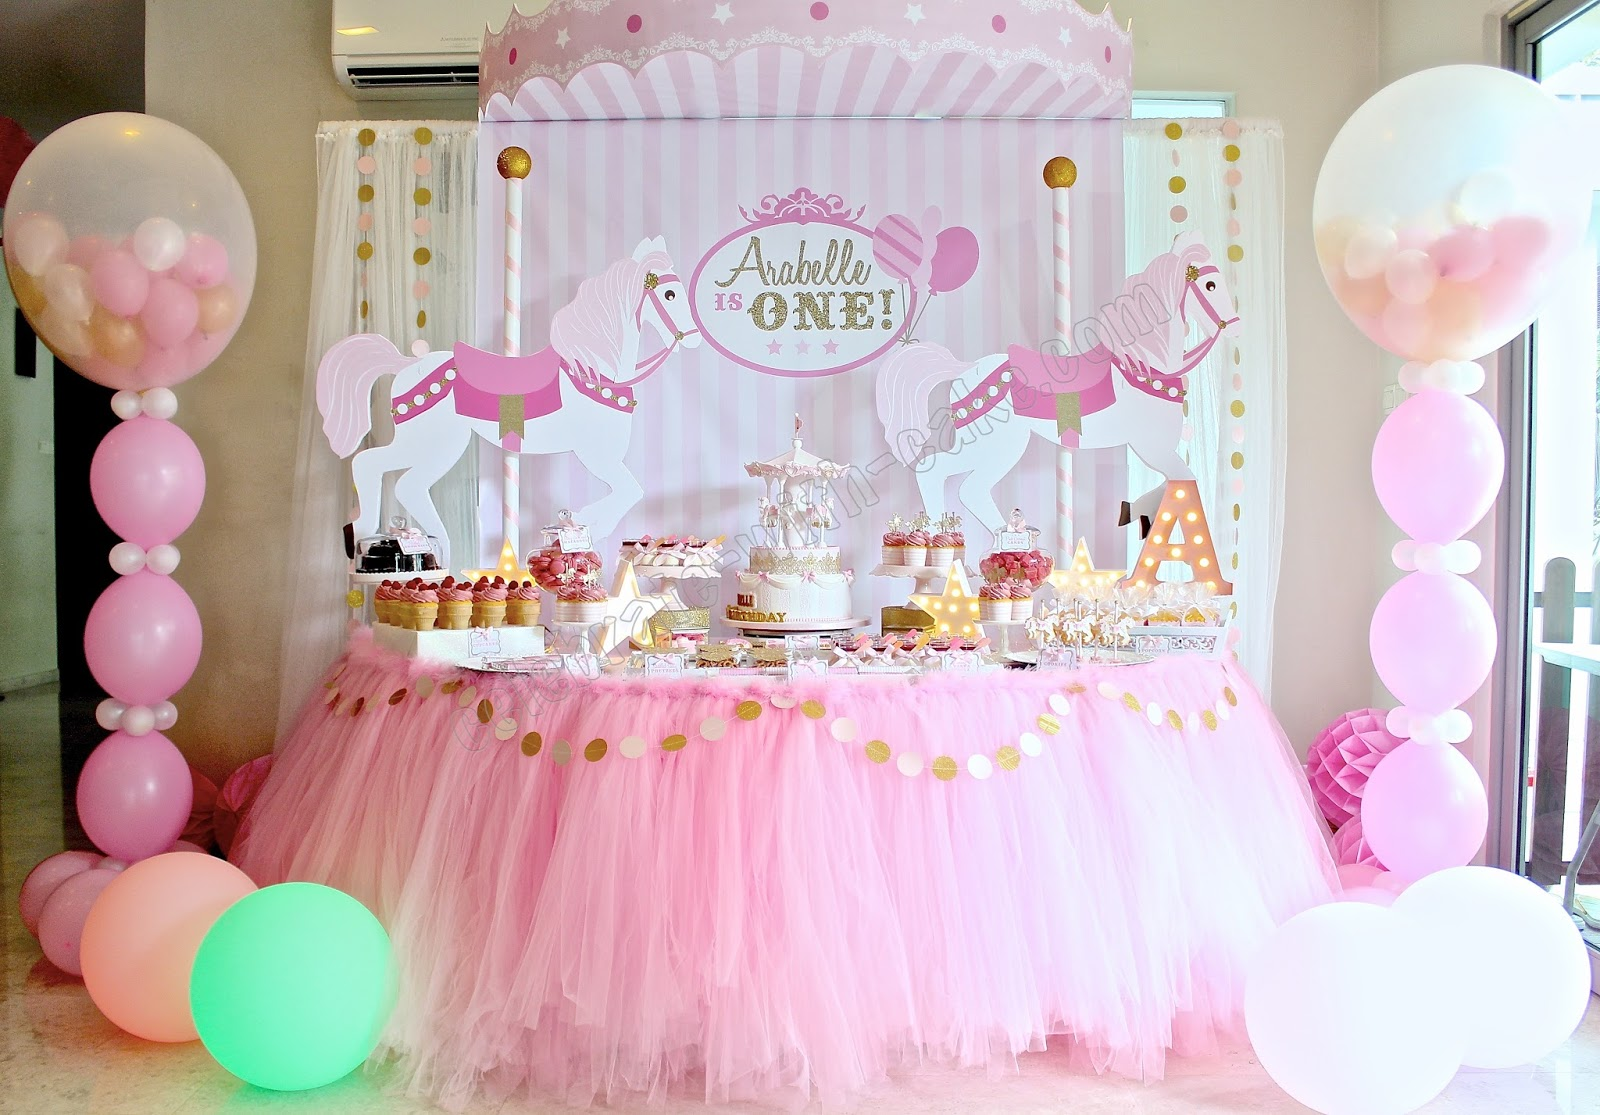 Celebrate with Cake!: Carousel themed Dessert Table (Click on post for more pictures)